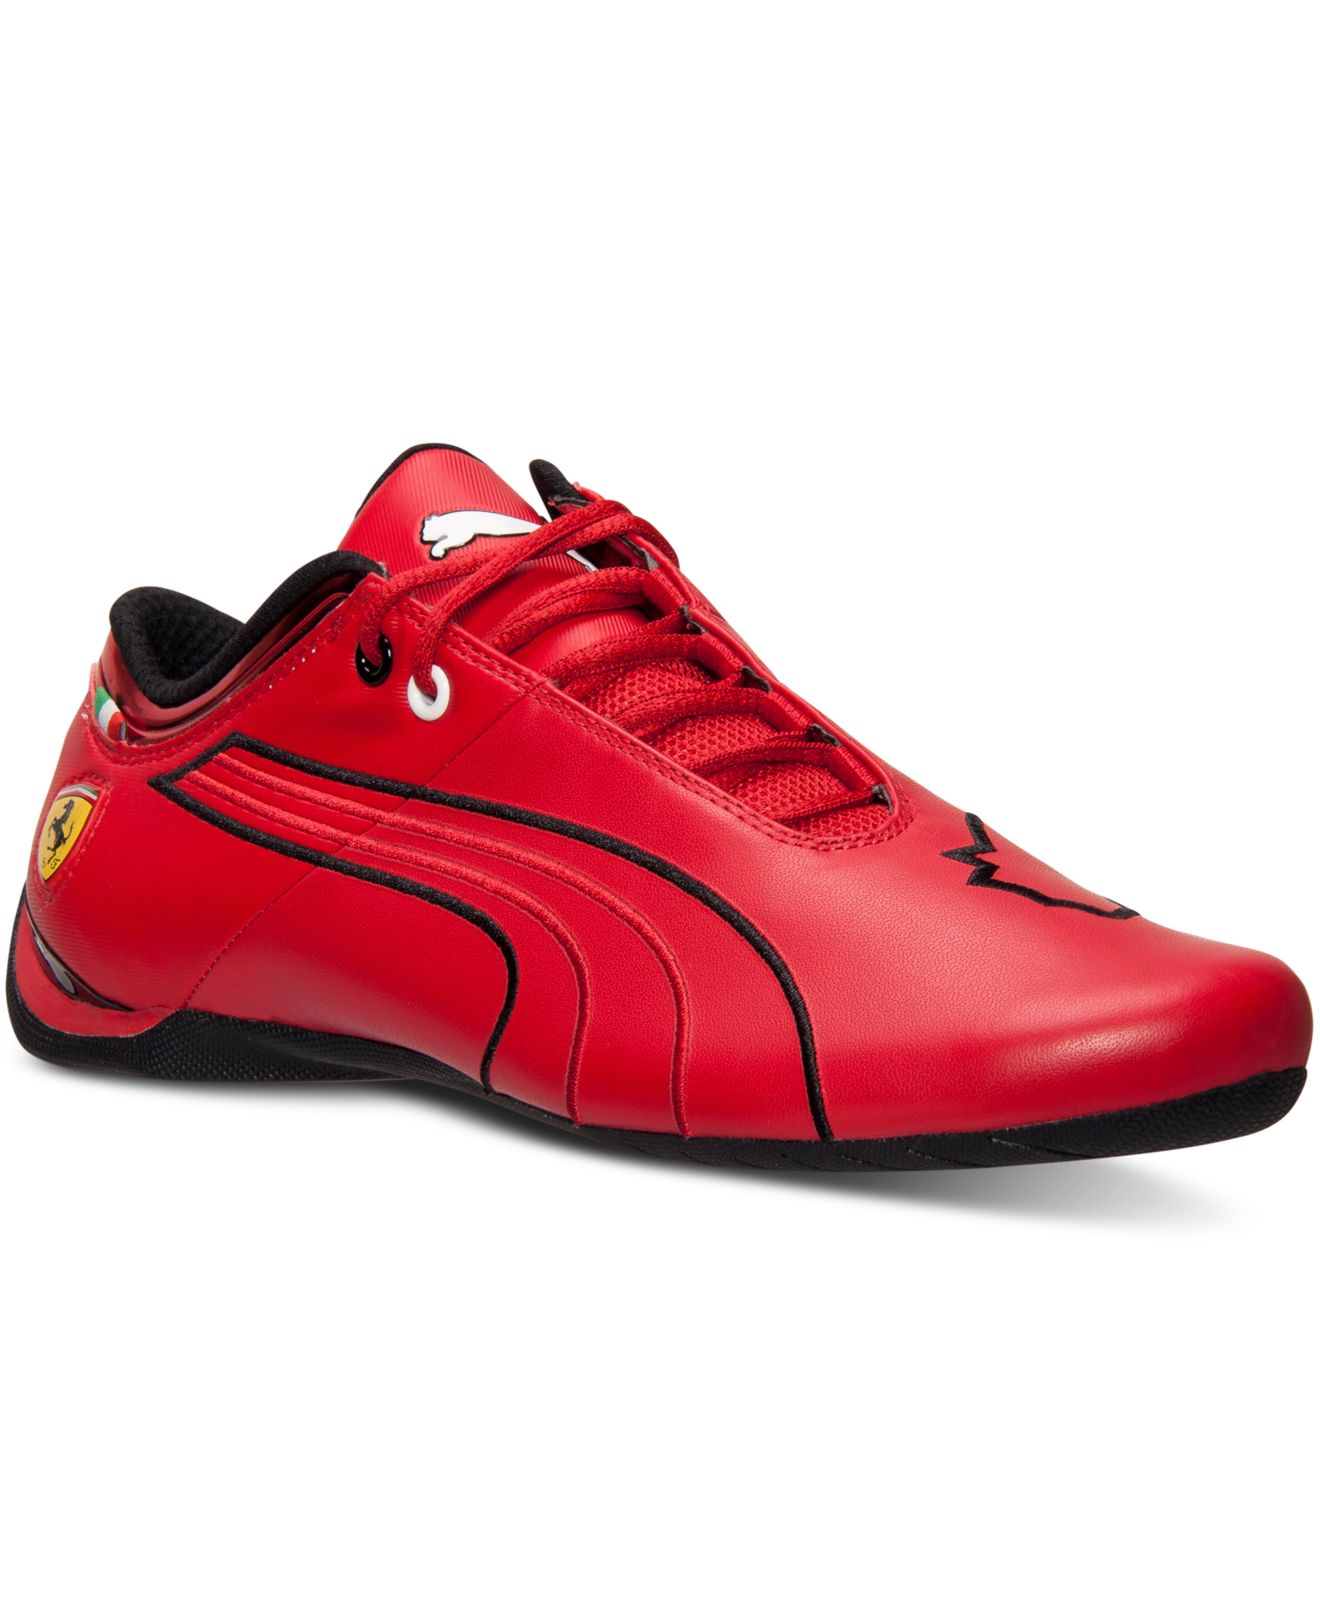 Lyst Puma Men S Future Cat M1 Sf Ferrari Casual Sneakers